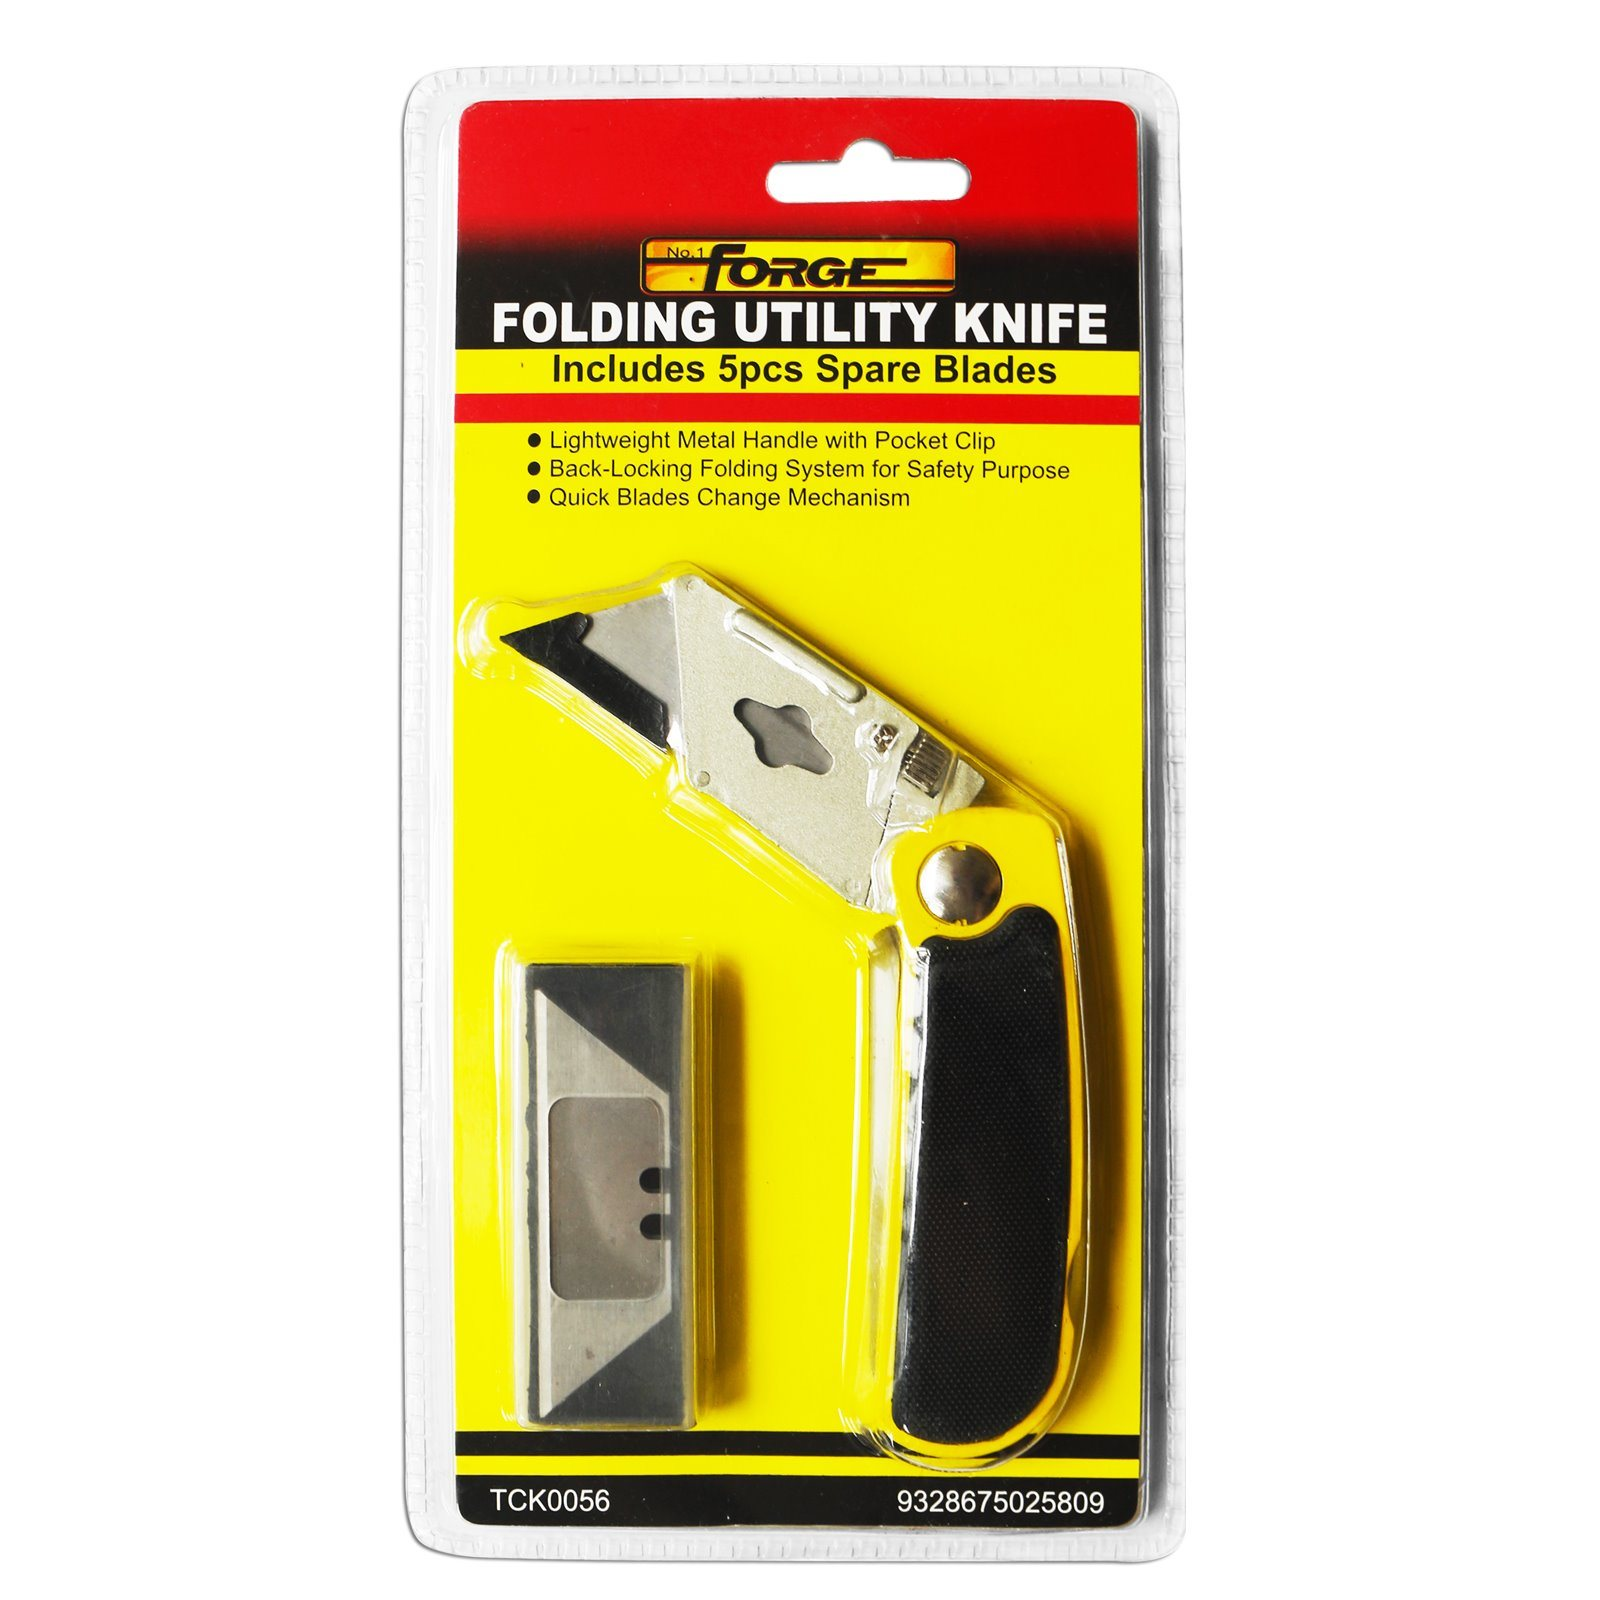 Cutting Tools Folding Utility Knife with 5 Spare Blades